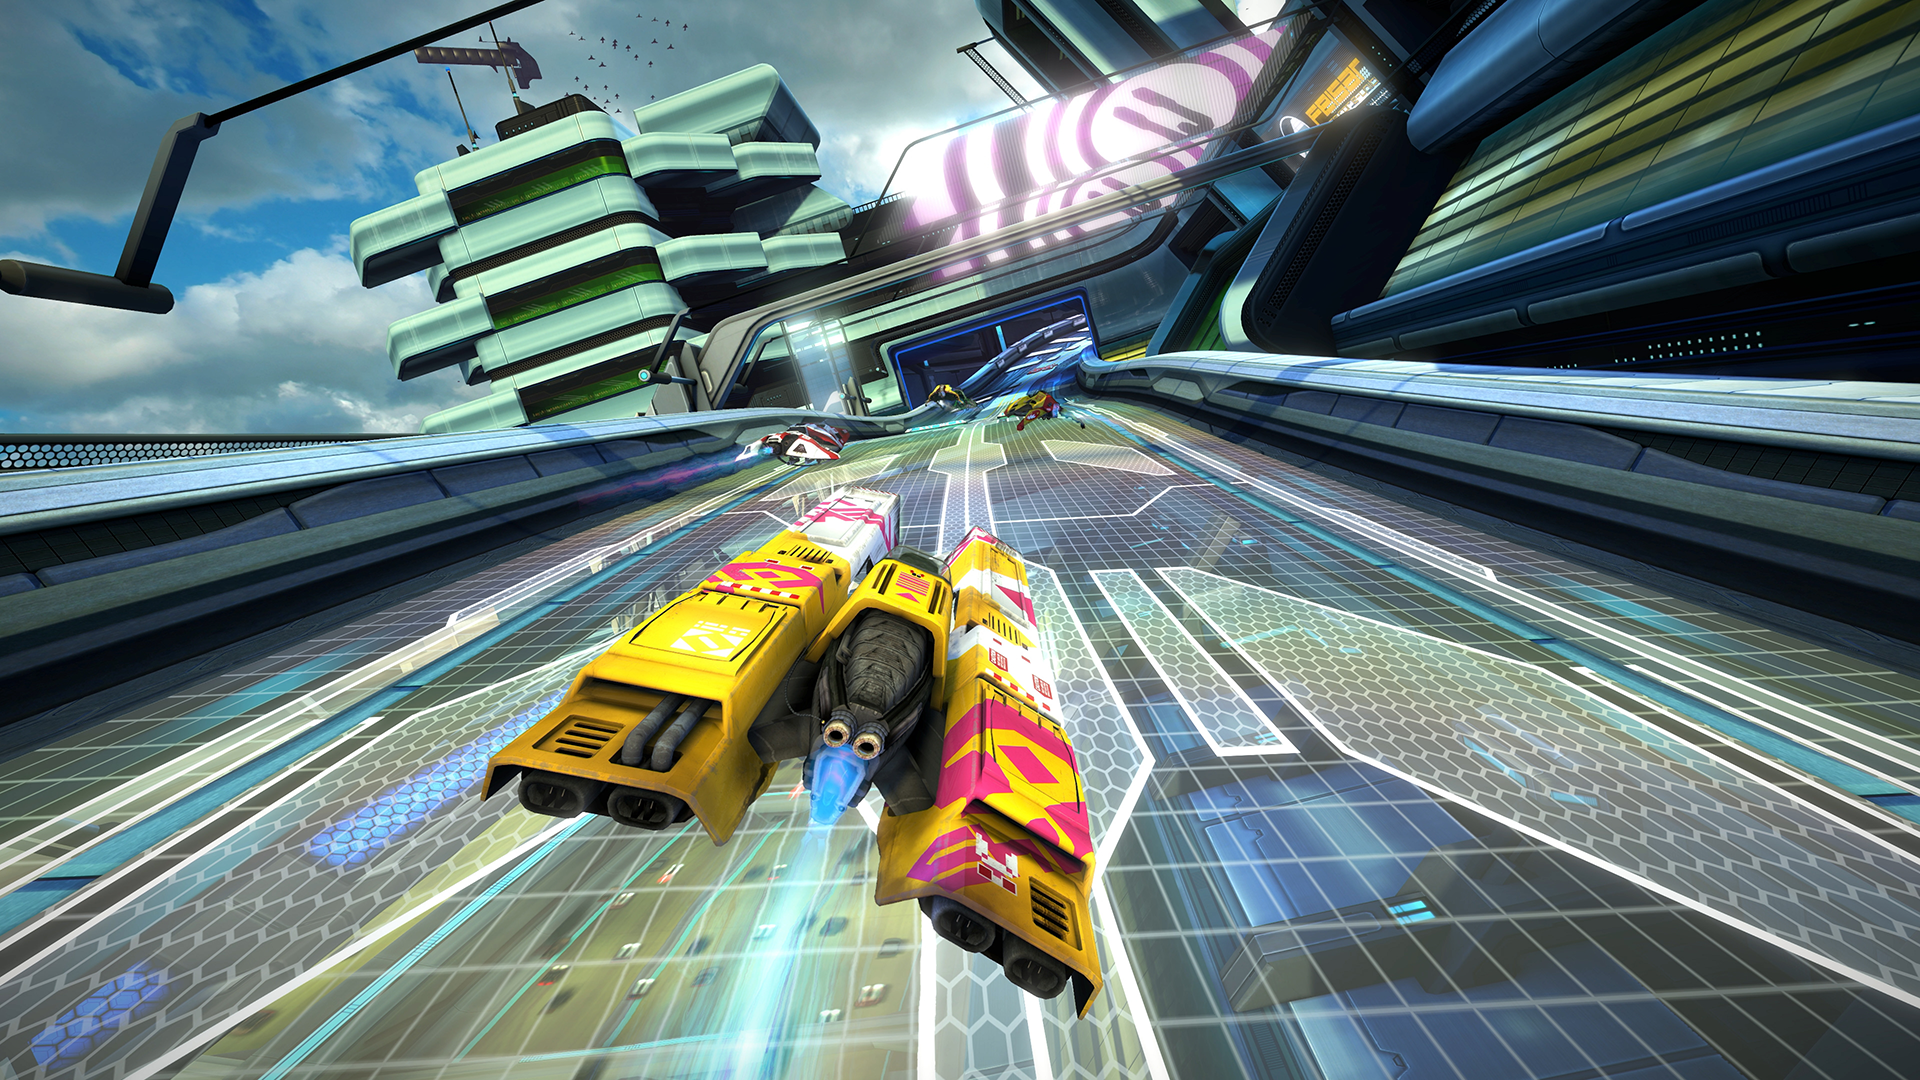 Image from Wipeout